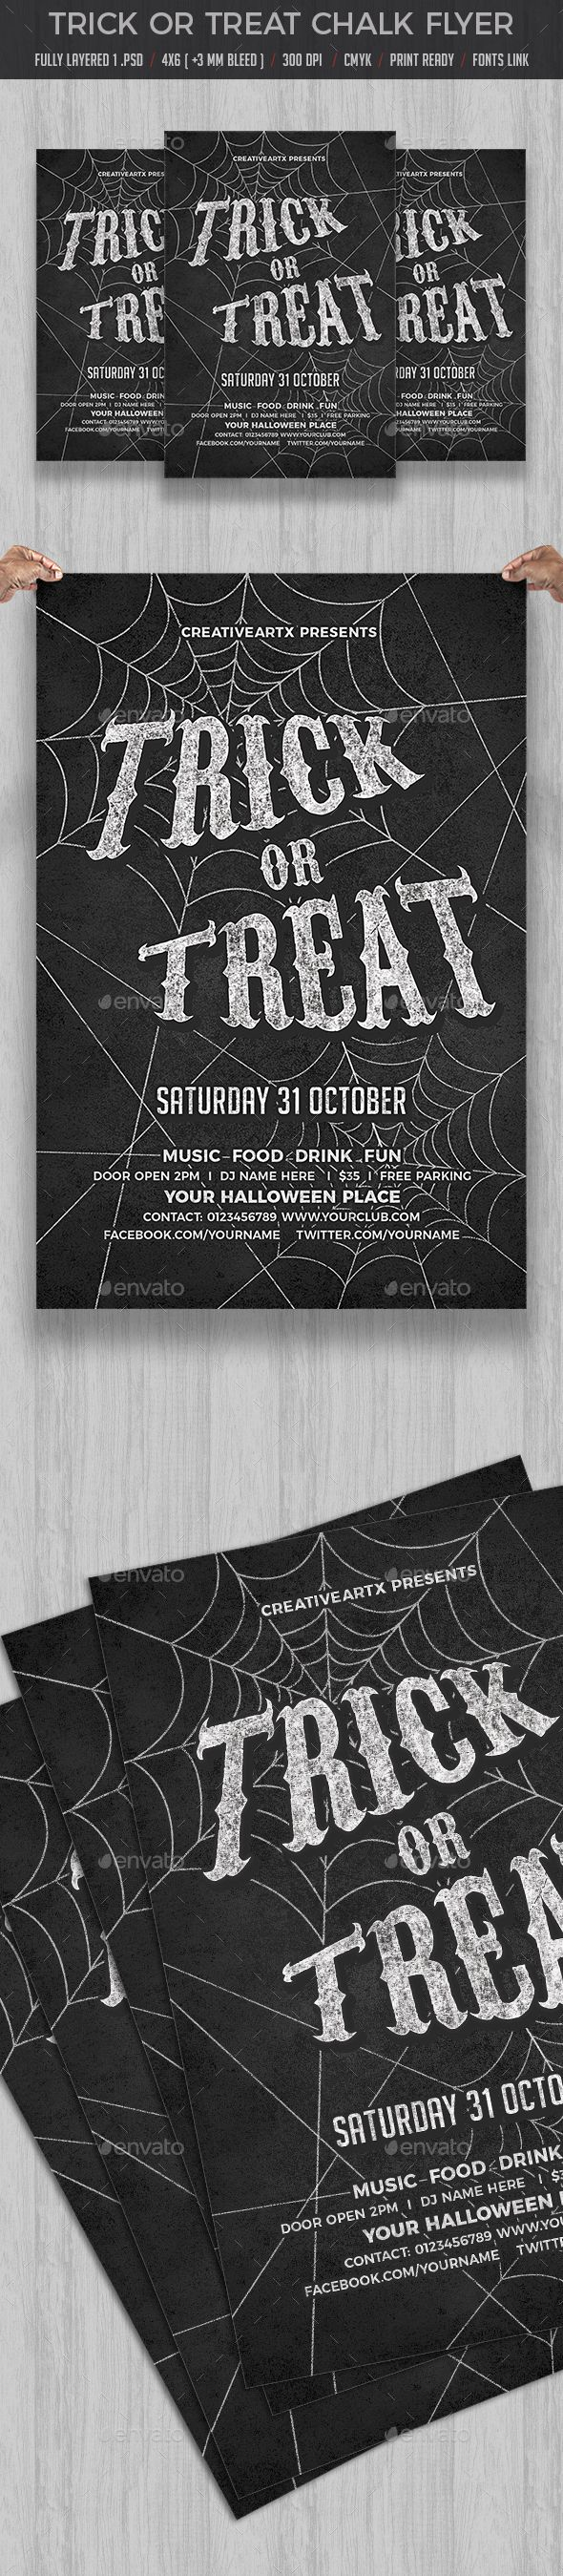 Best Halloween Poster Templates Images On   Halloween